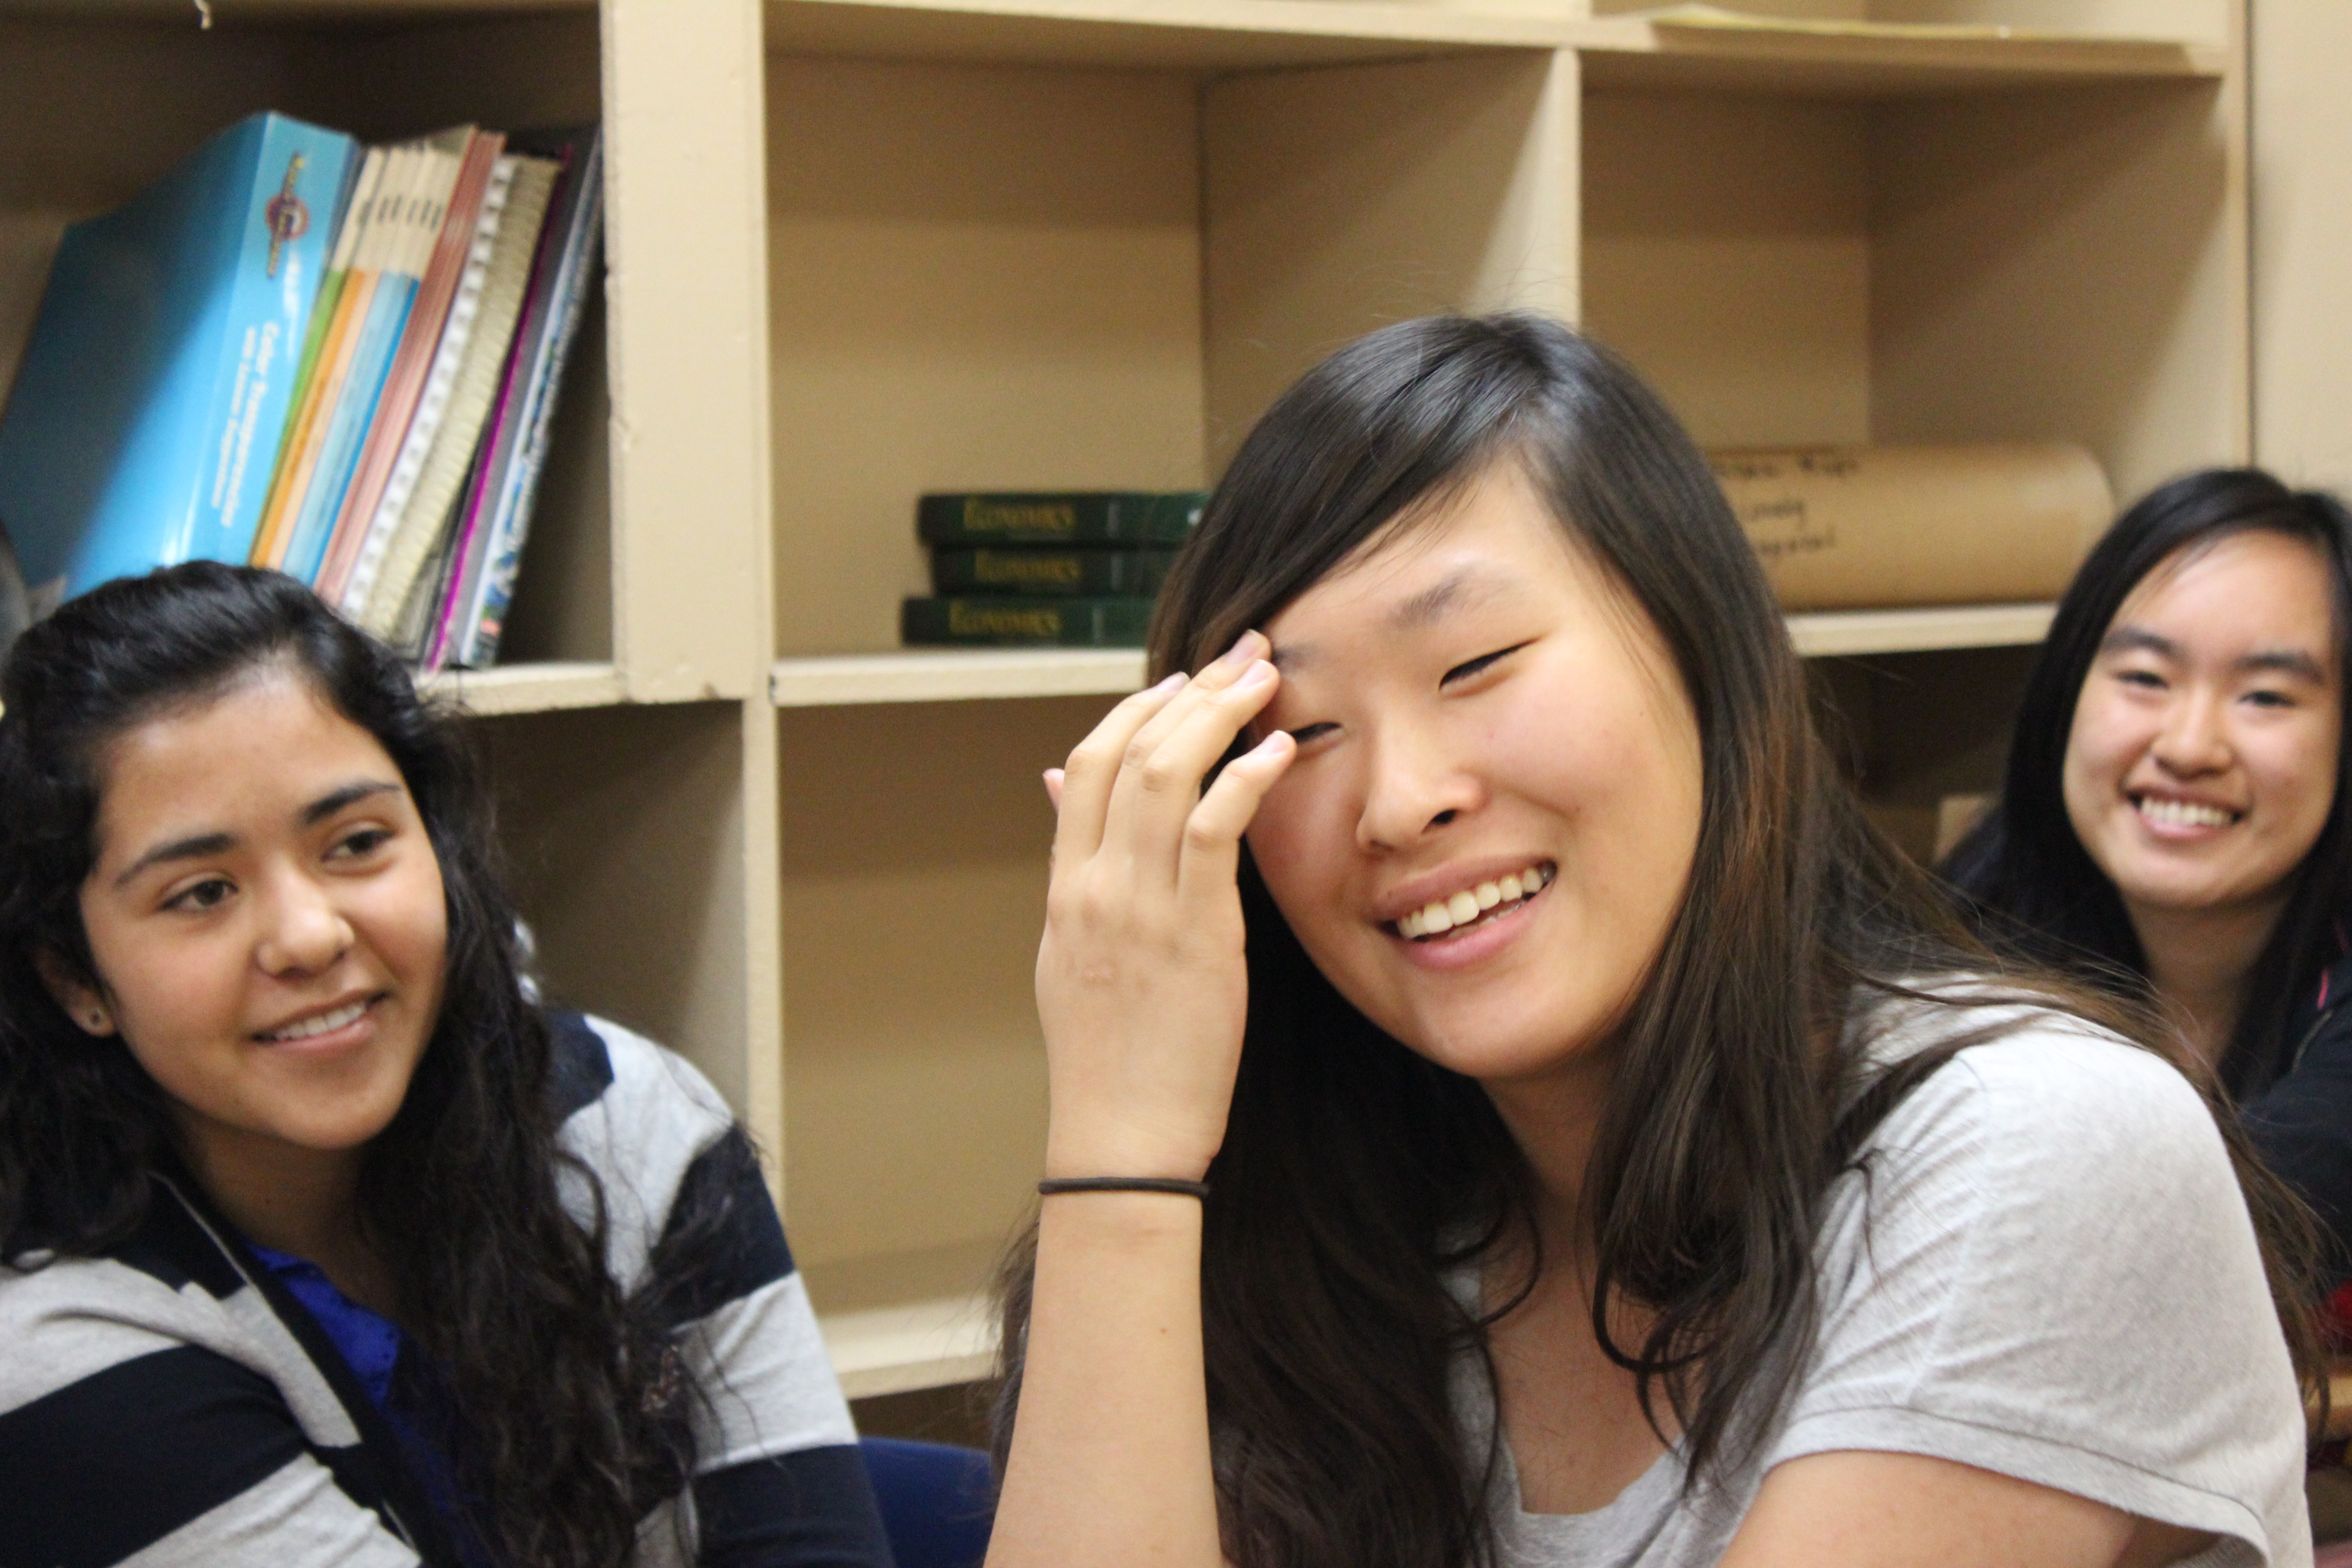 Caption: Exchange Students, Judith Gap, MT, Credit: Clay Scott